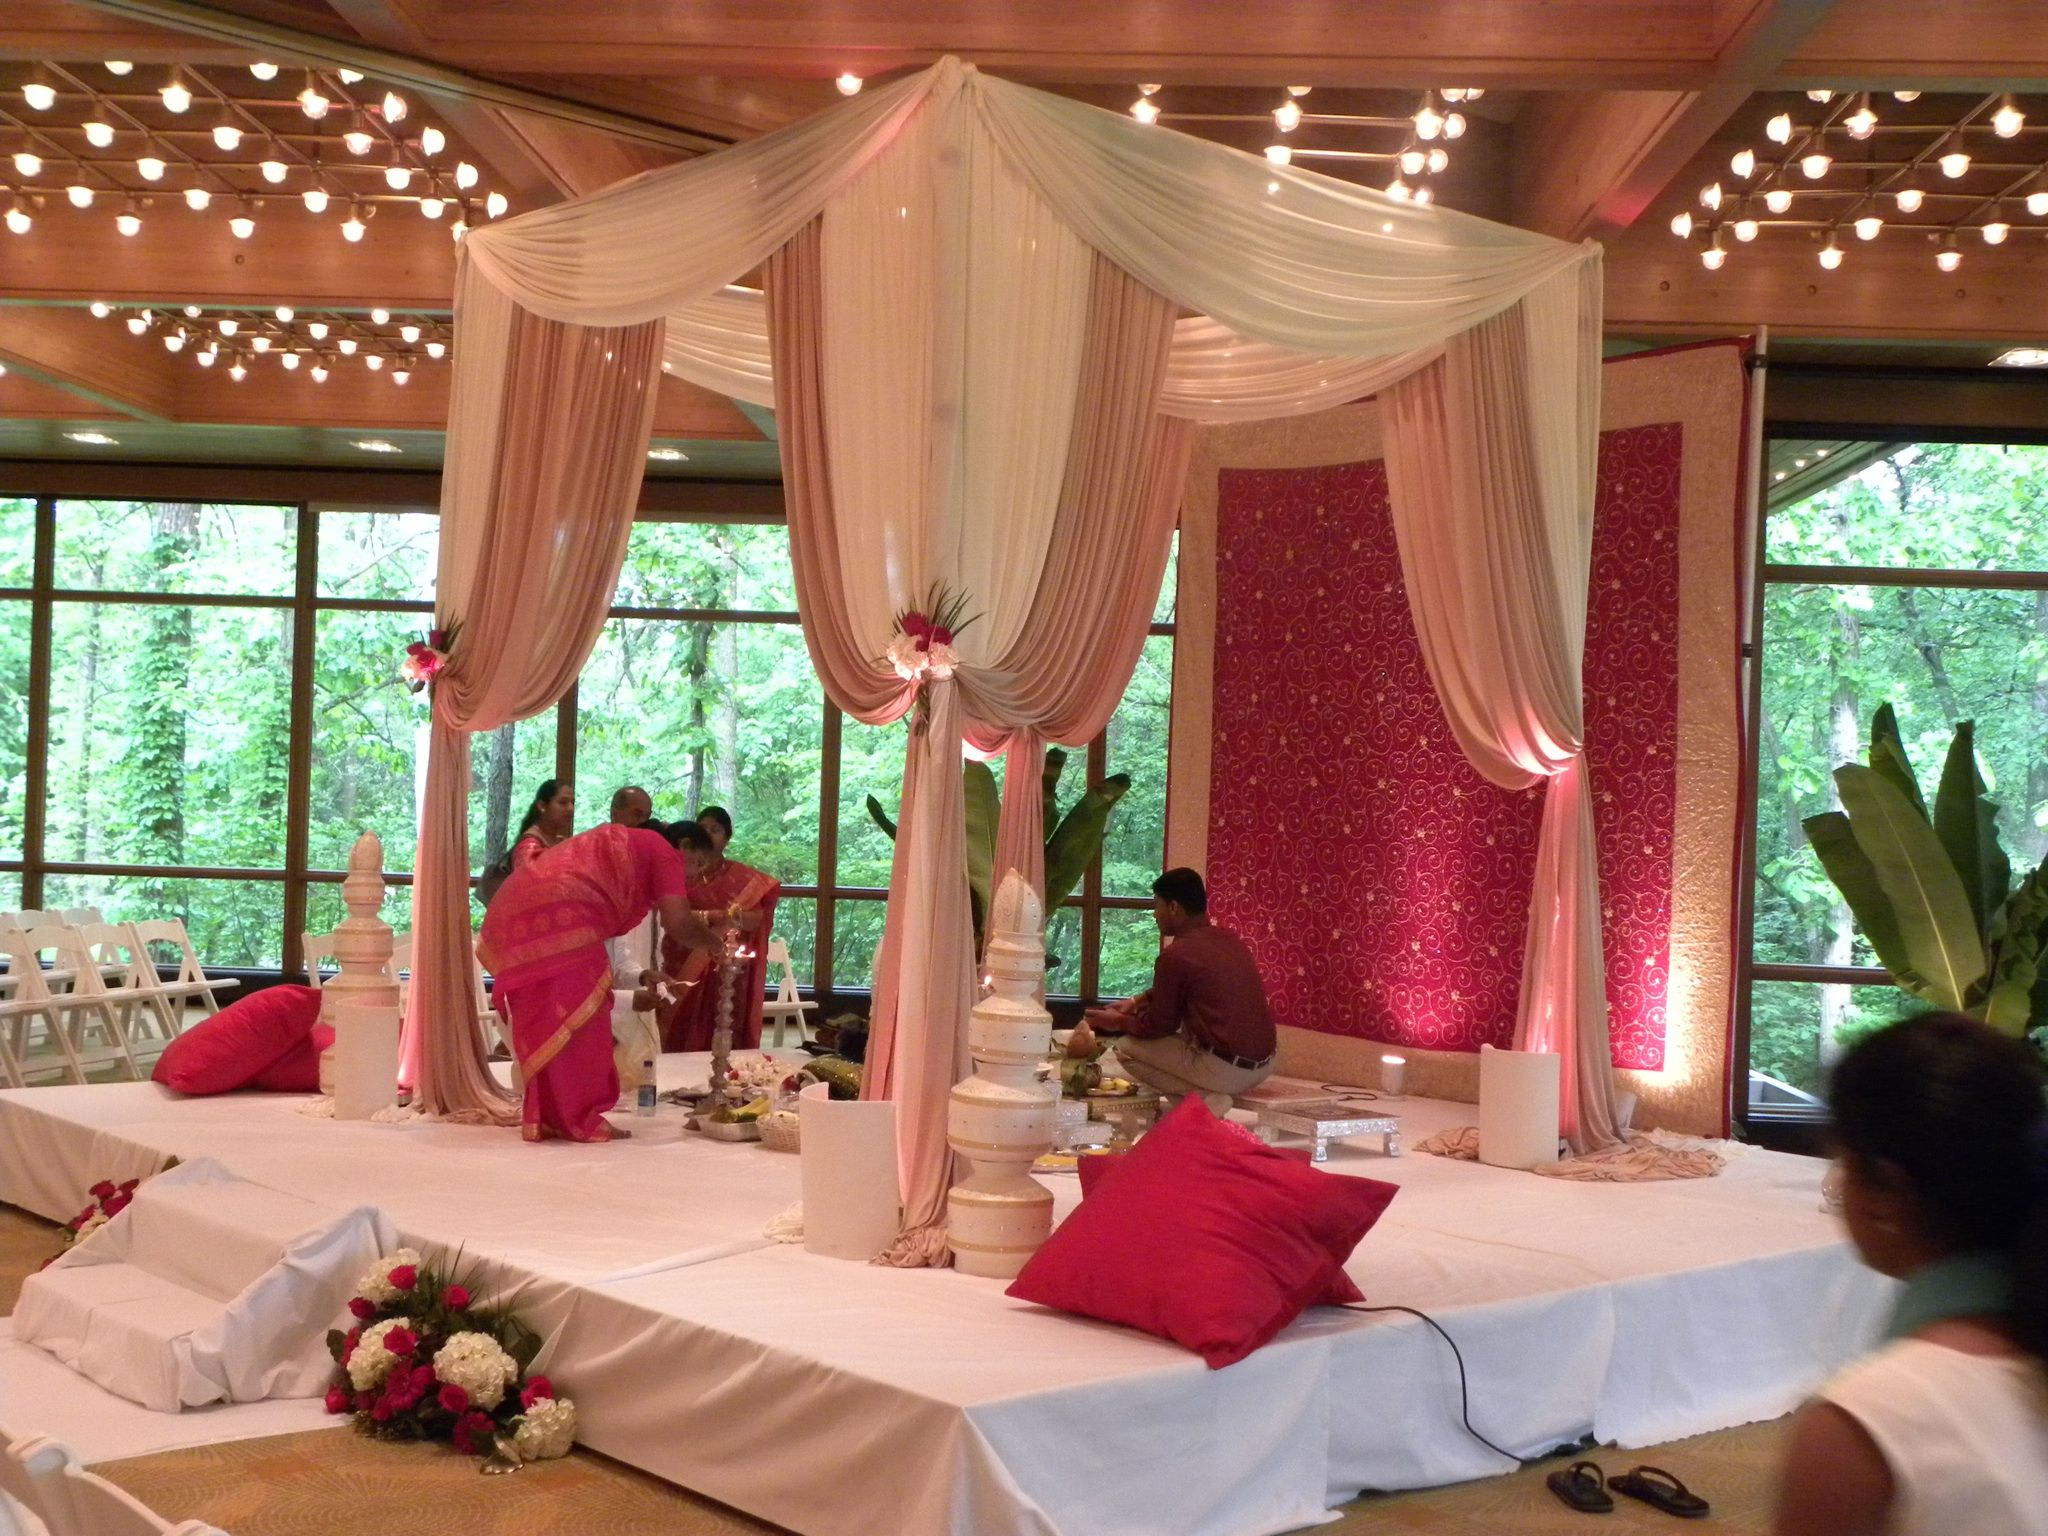 Wedding stage simple decoration images  Ivory and champagne fabric work so well together and the hint of red